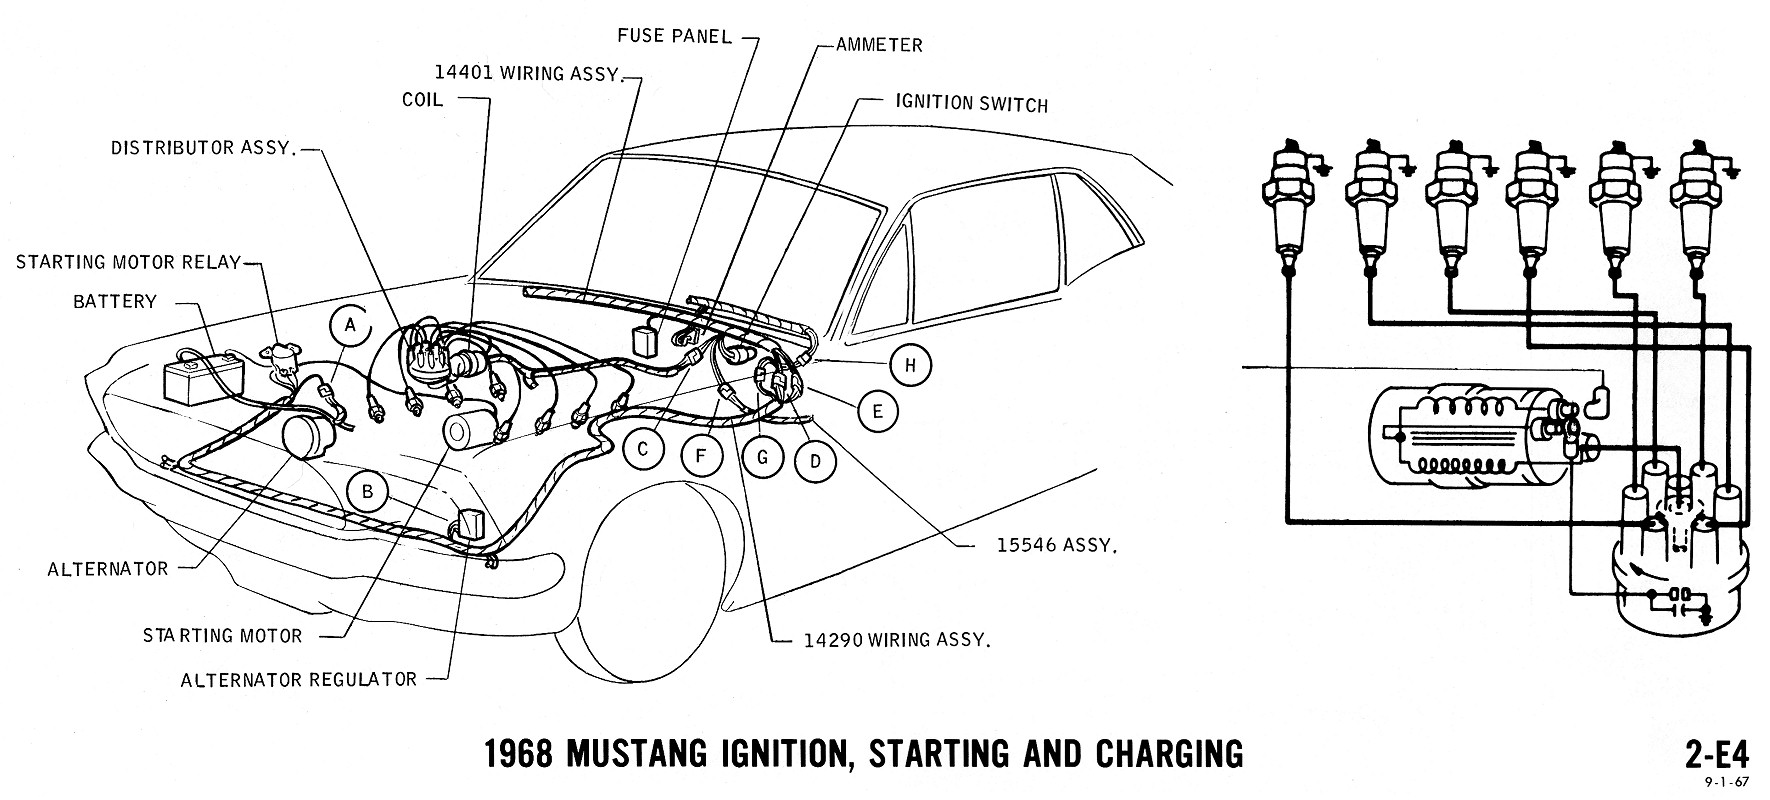 1968 mustang wiring diagram ignition starting charging 2 1968 mustang wiring diagrams and vacuum schematics average joe 1969 mustang wiring diagram at bayanpartner.co